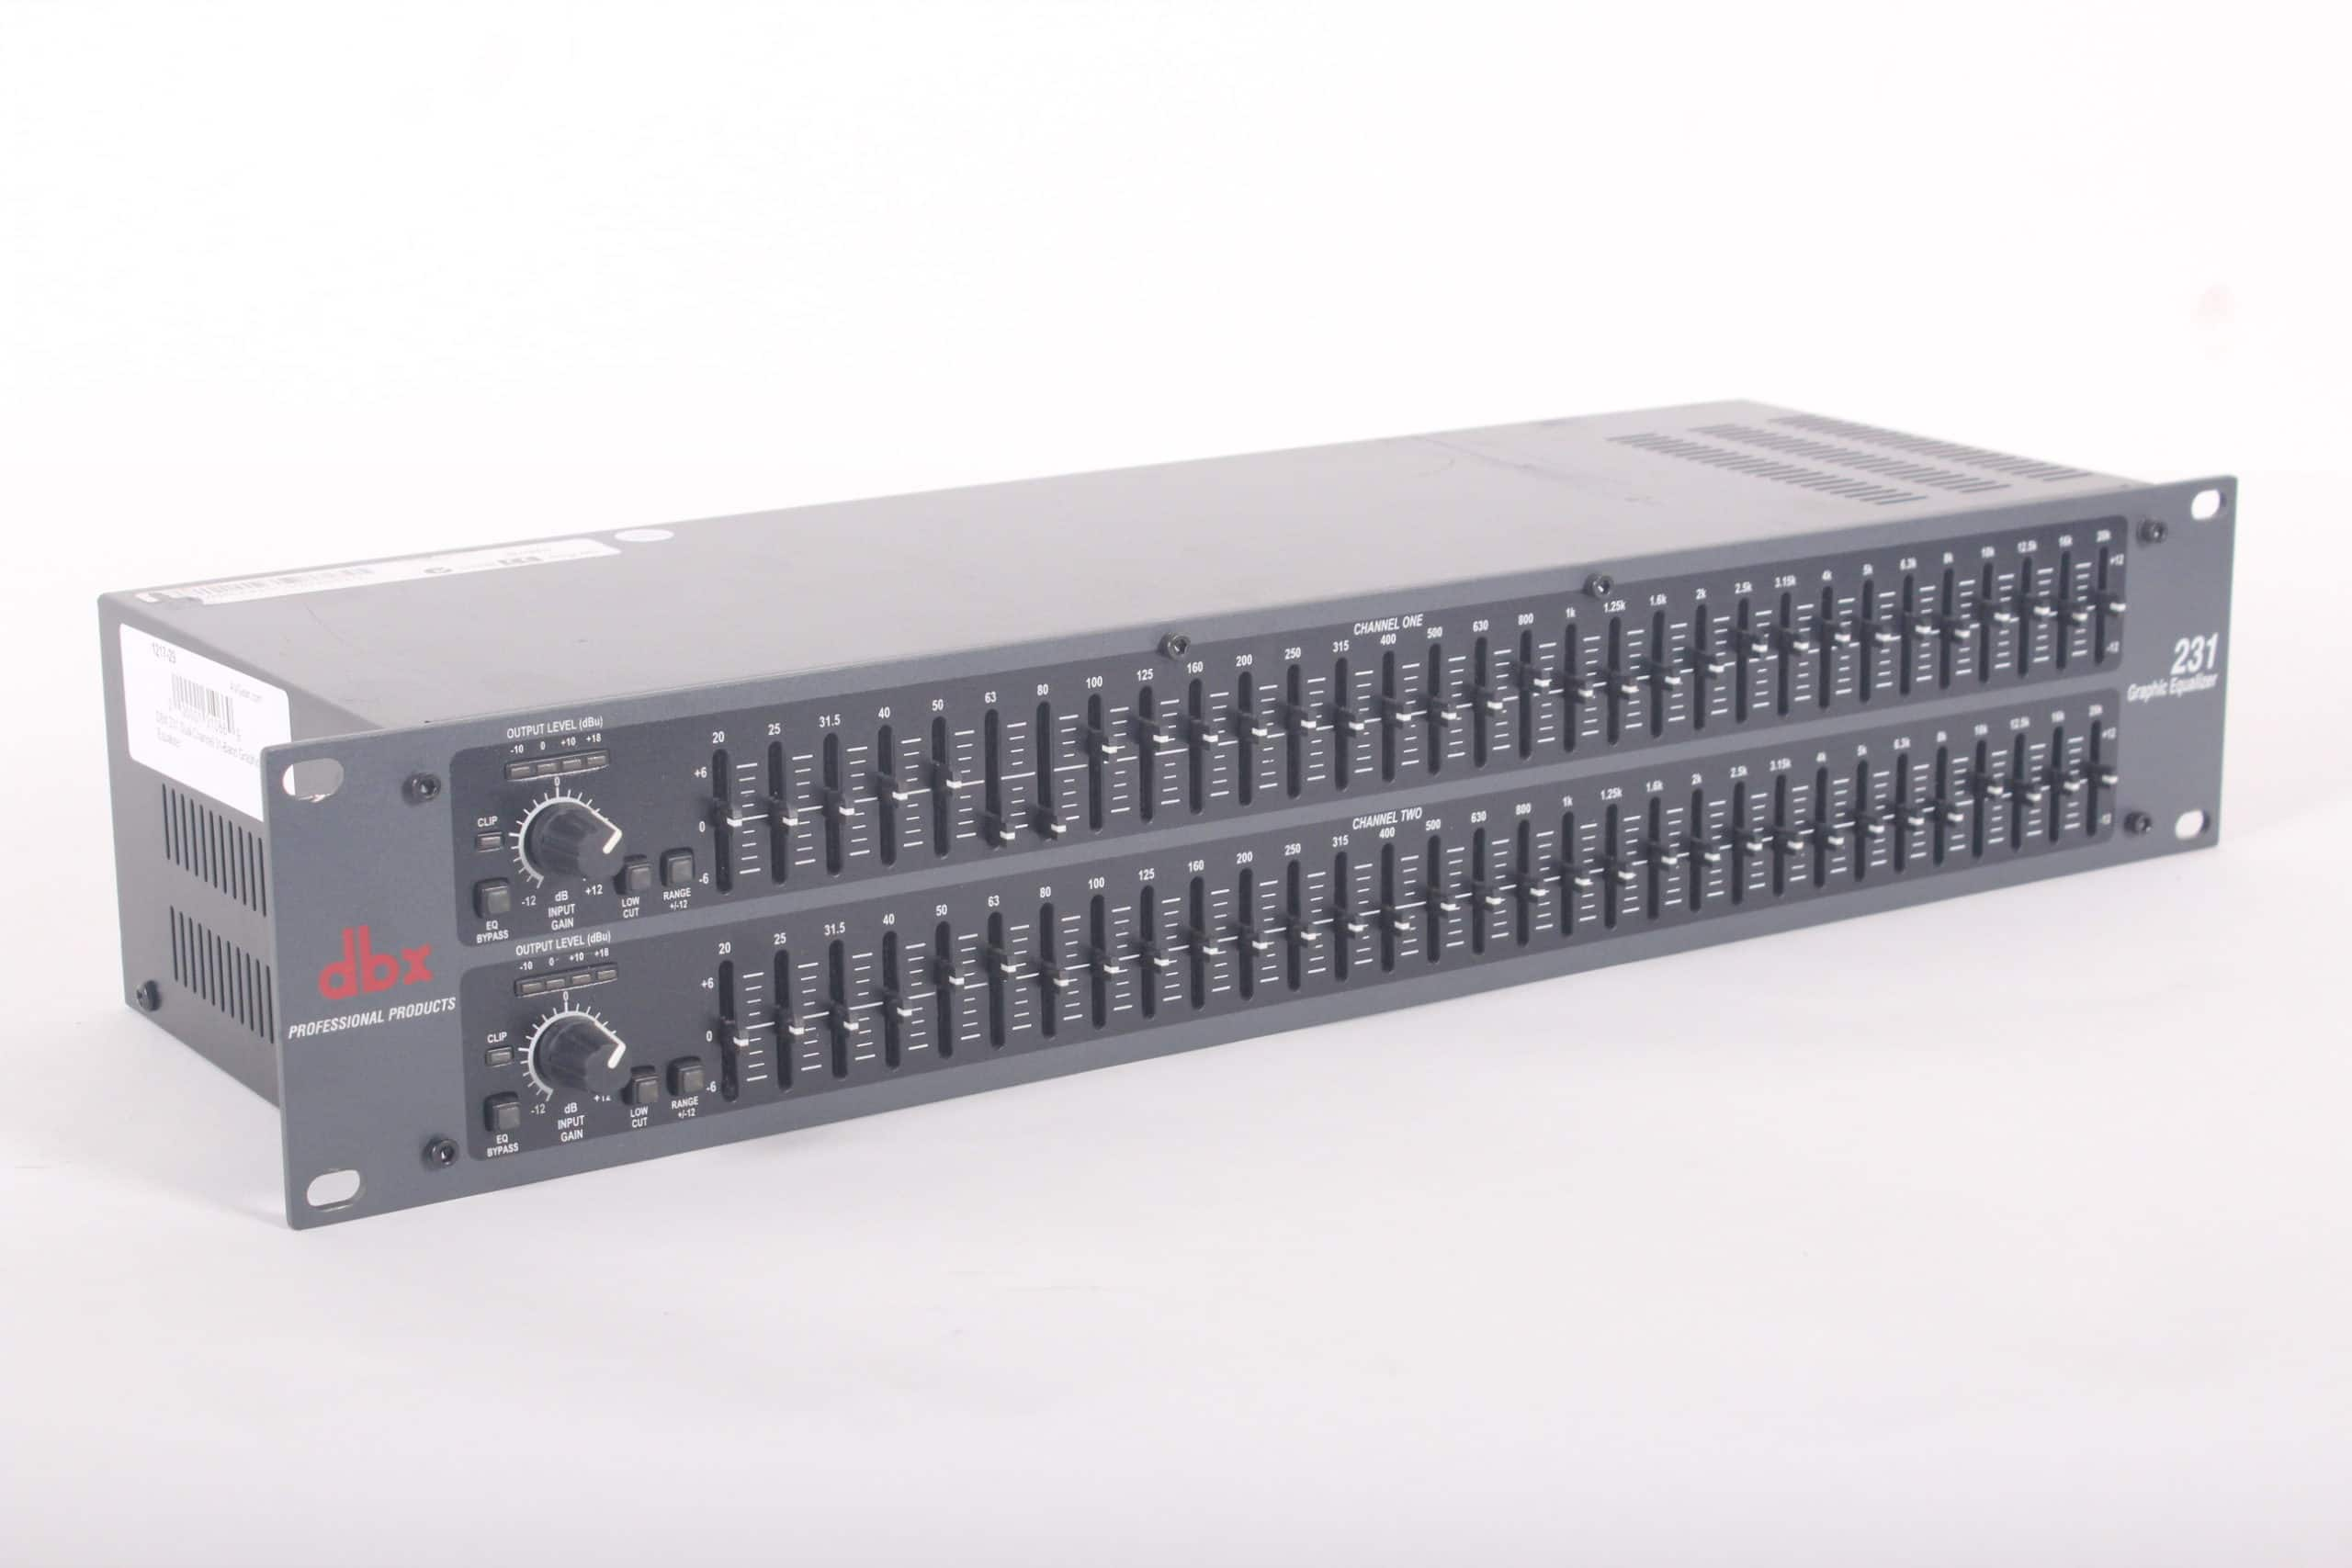 dbx-231-dual-channel-31-band-graphic-equalizer MAIN